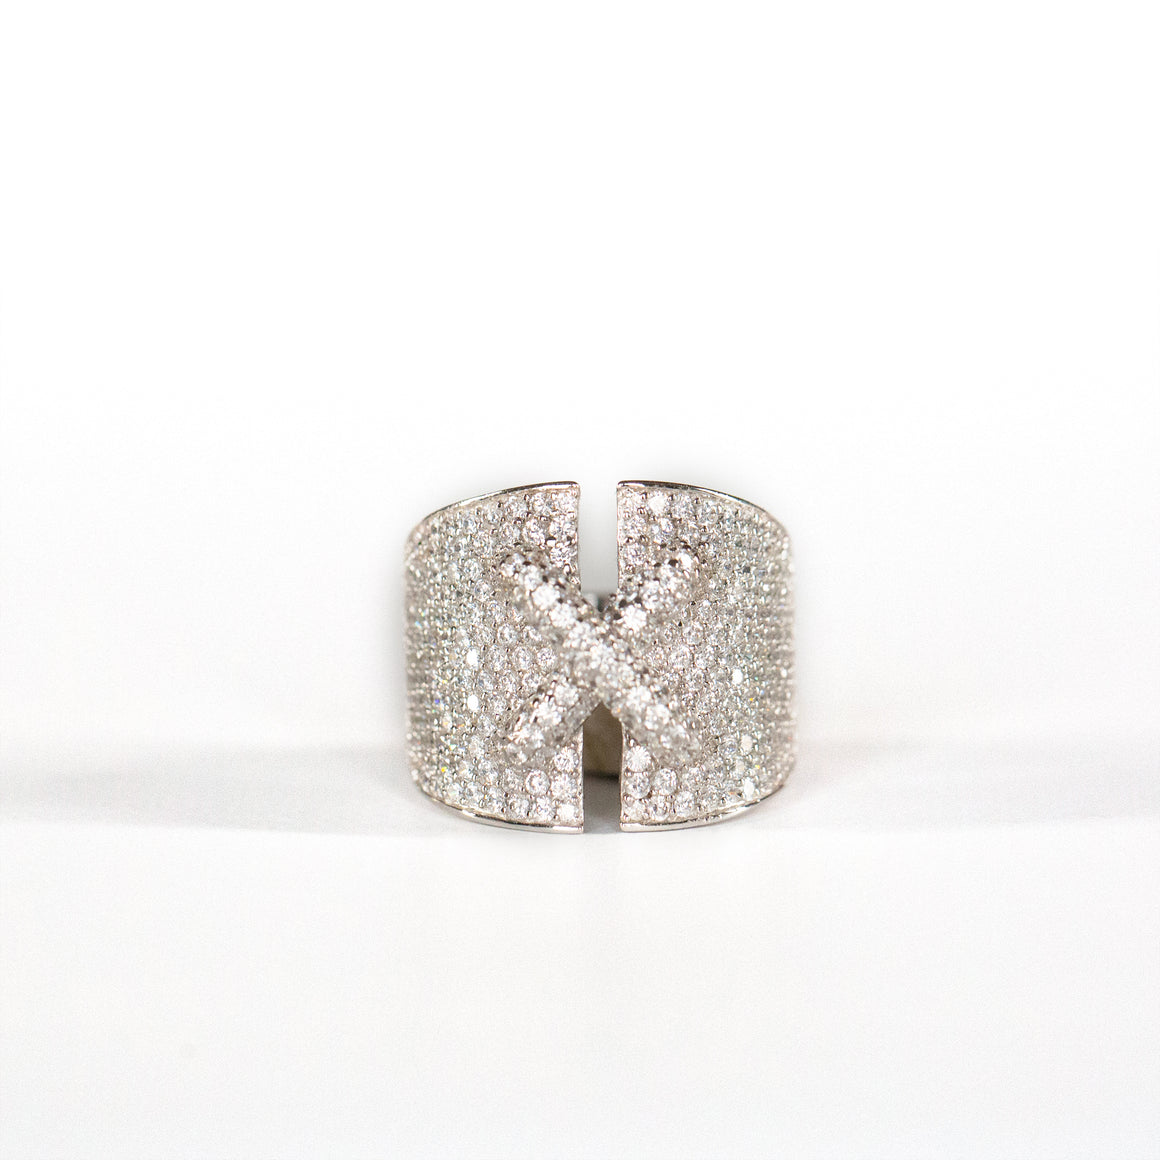 VINTAGE JEWELRY | STERLING MICROZIRCONIA CORSET RING (SIZE 8)